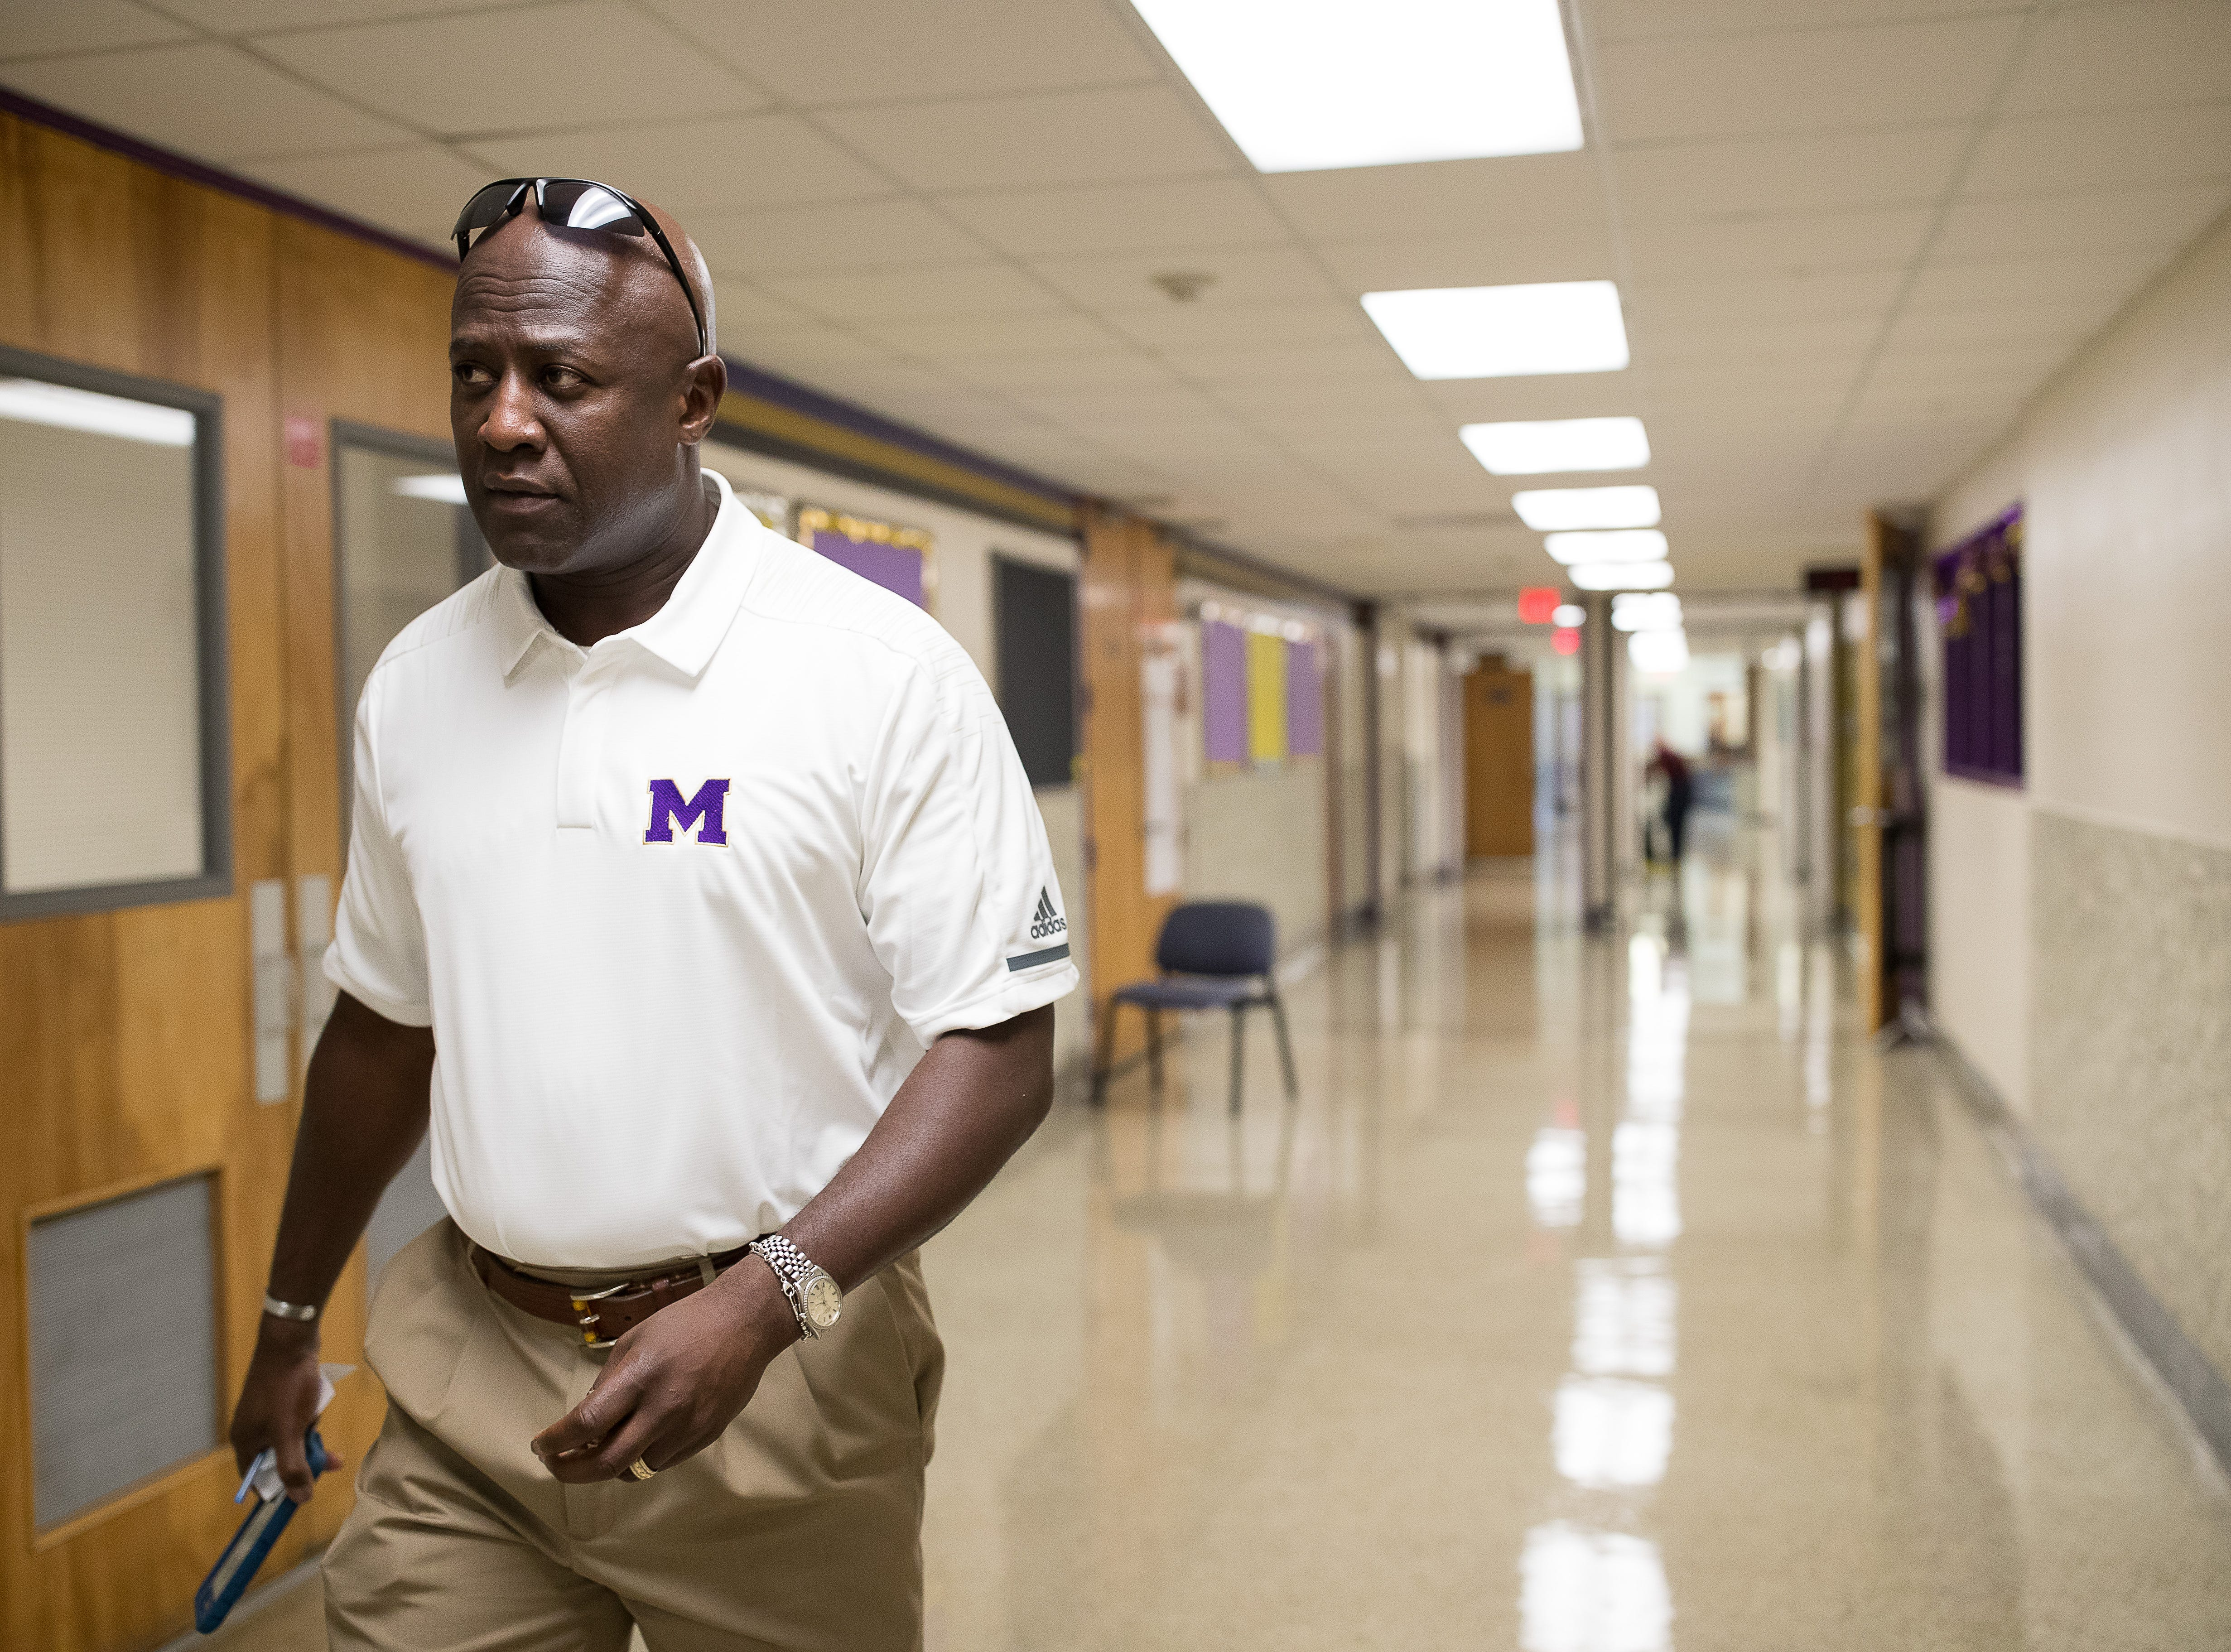 Miller High school's new principal Bruce Wilson walks down the hallway of his new school before the start of the new year on Thursday, Aug. 9, 2018.